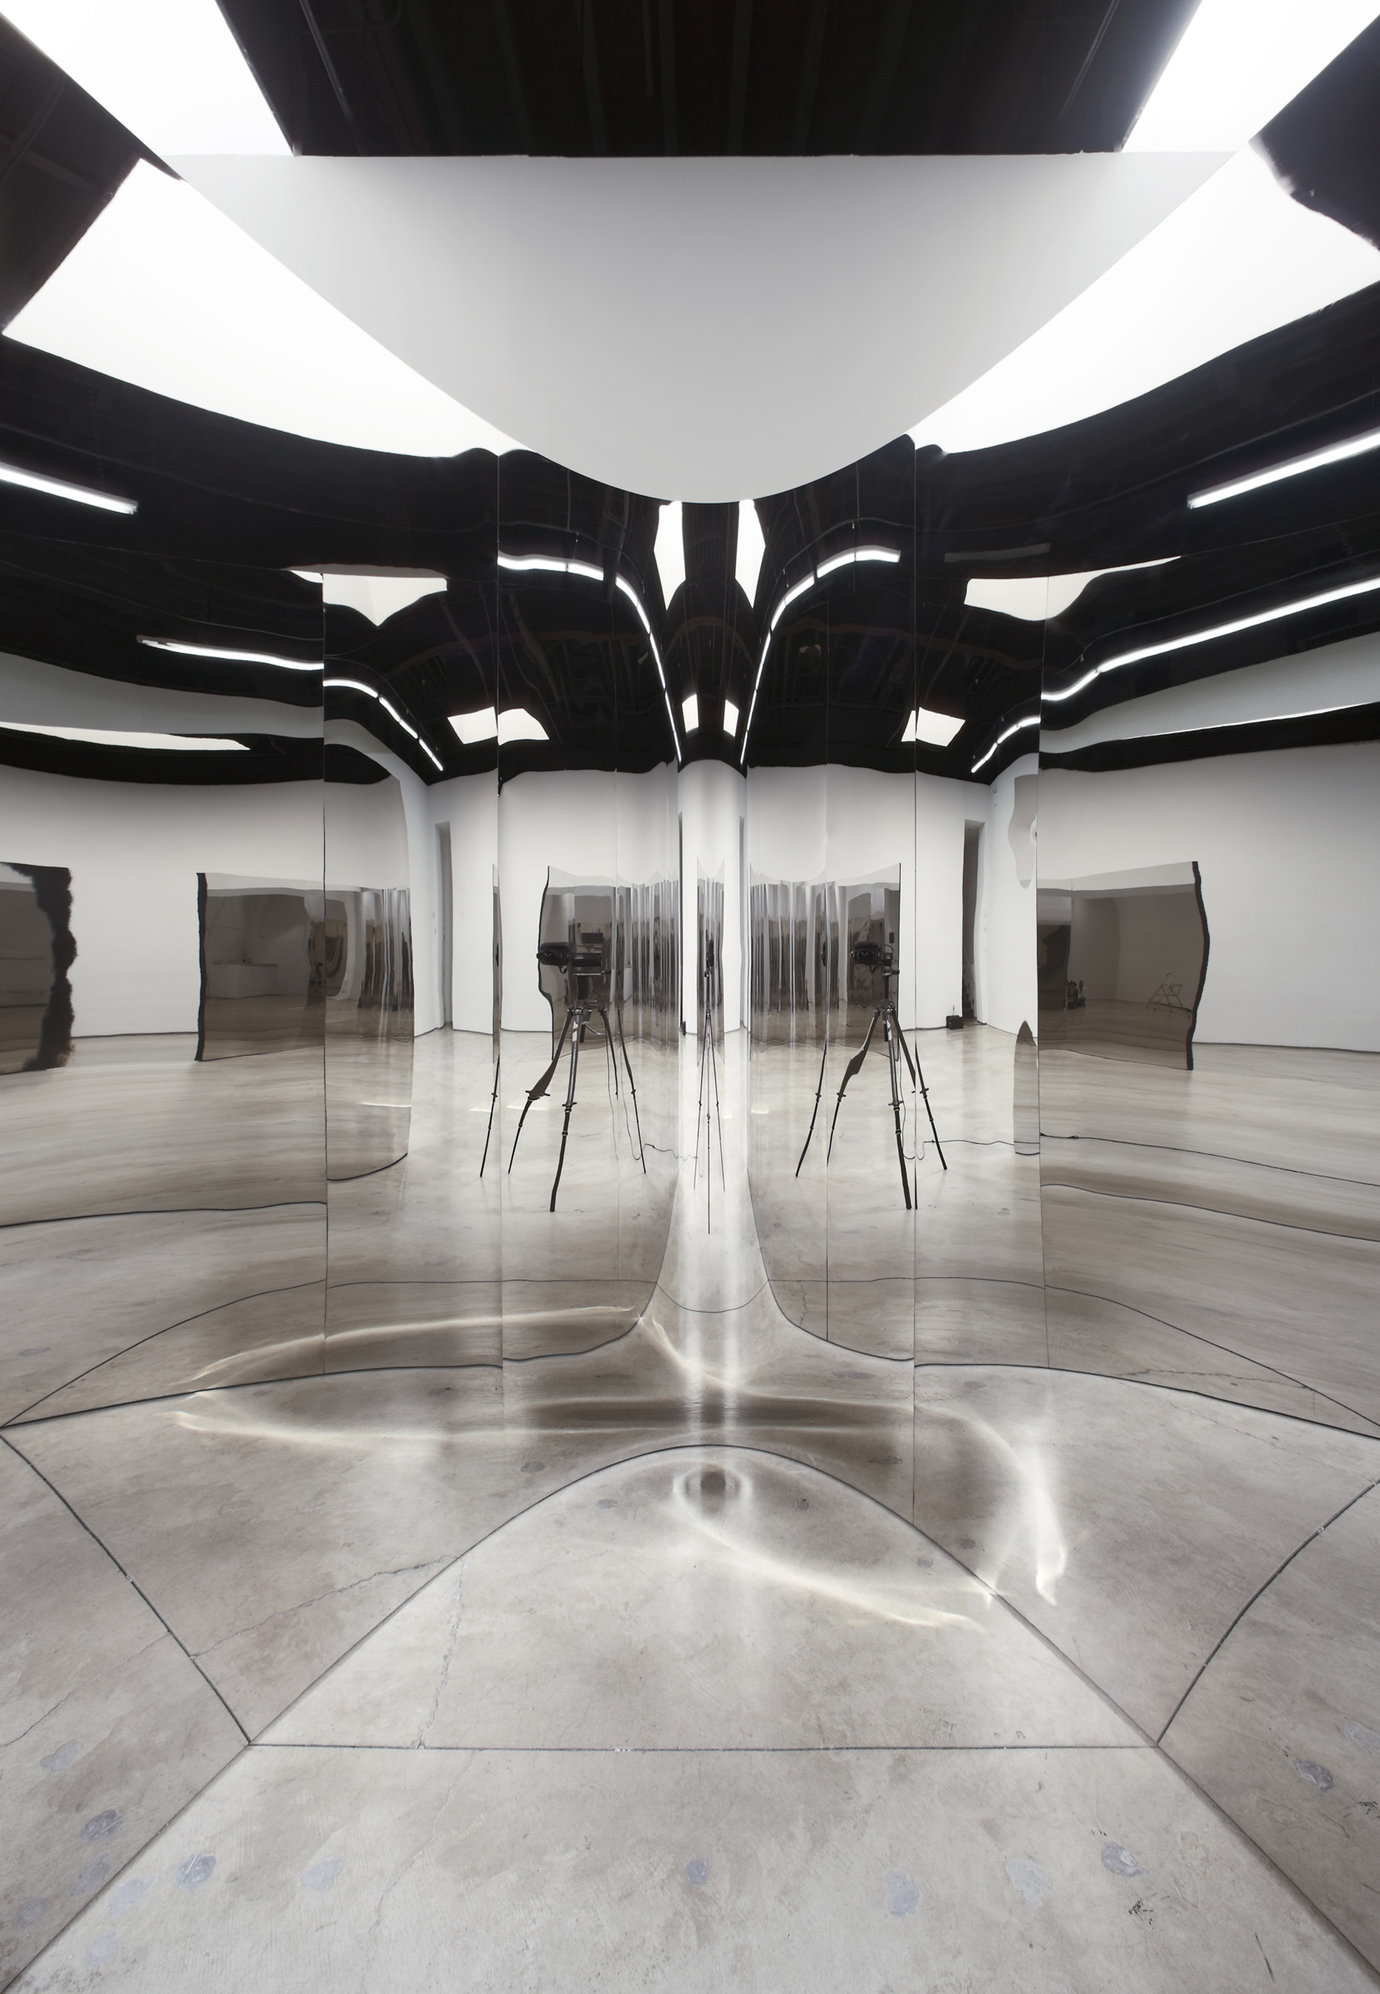 ", 2007. Coated steel, stainless steel, and sound, 9' 10-1/8"" x 9' 10-1/8"" x 9' 2-1/4"" (300 cm x 300 cm x 280 cm)."